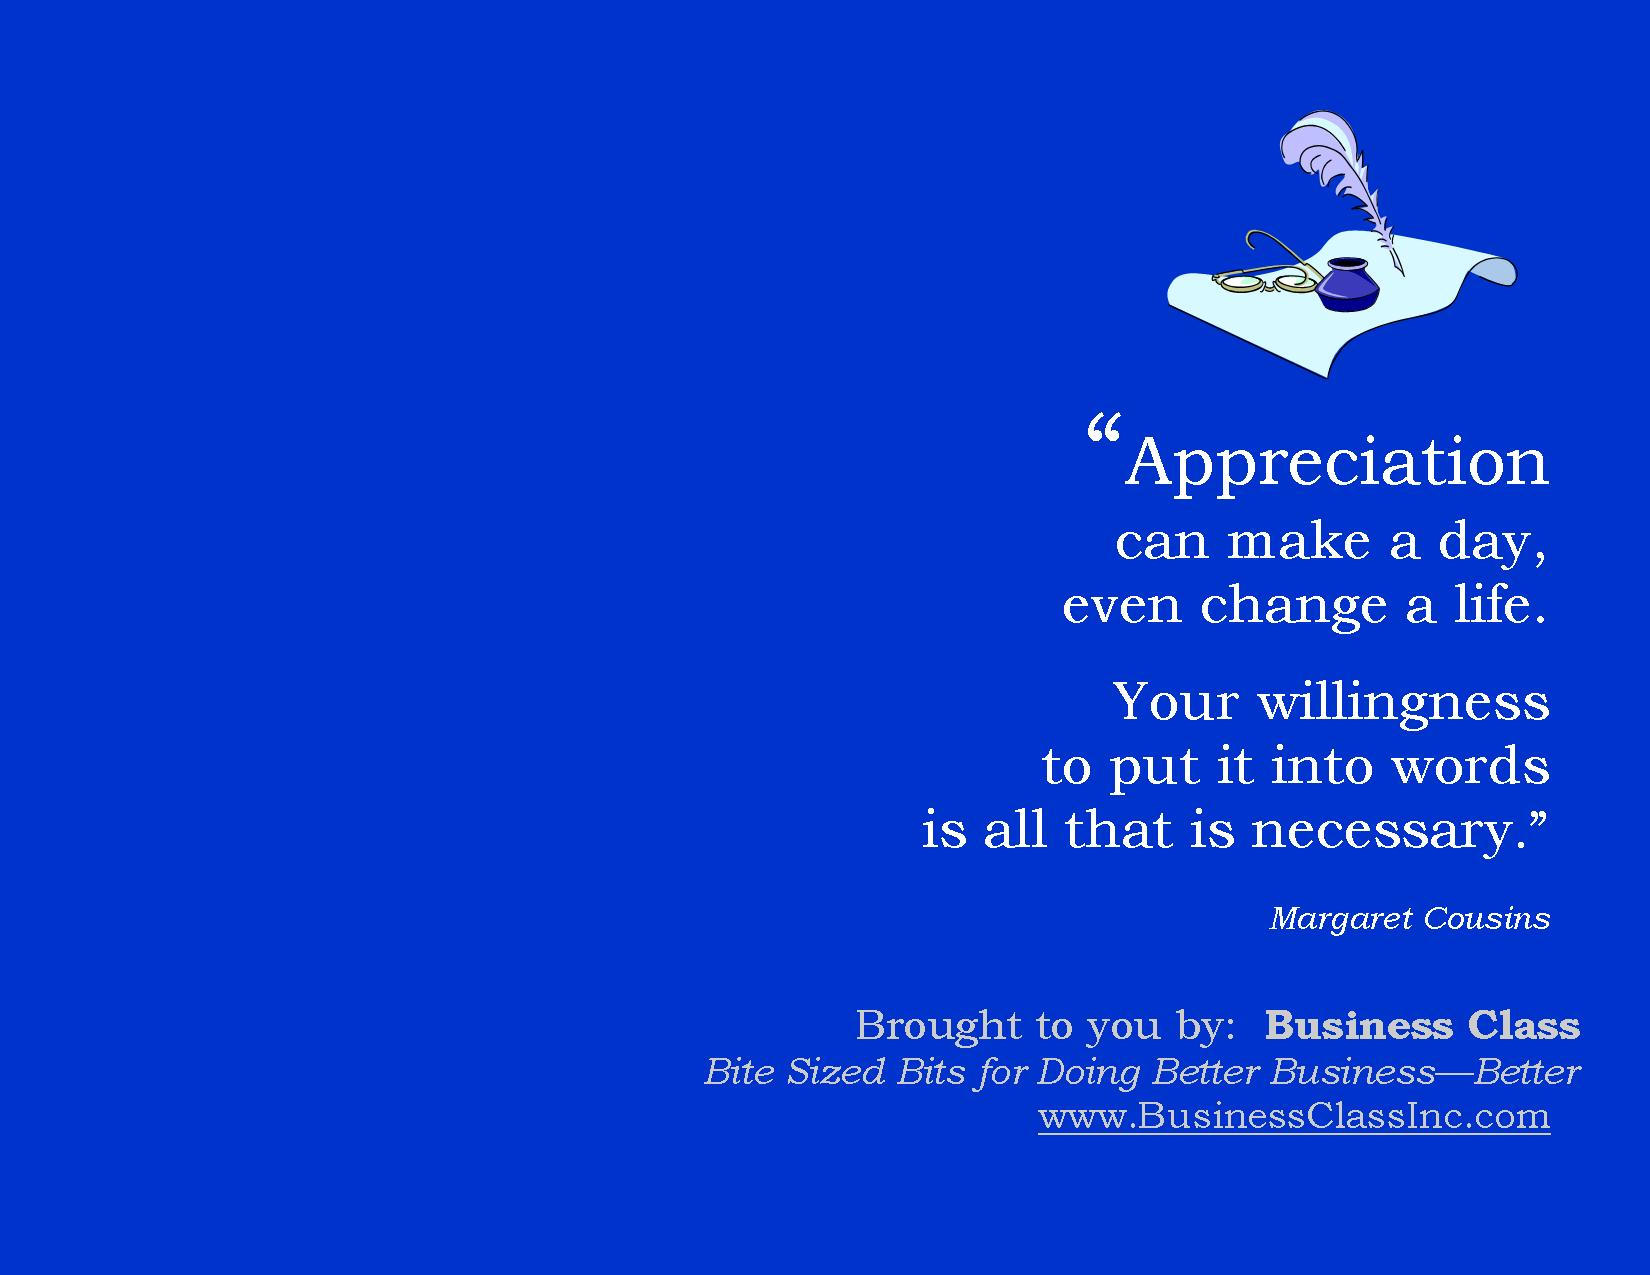 Appreciation can make a day or a life...